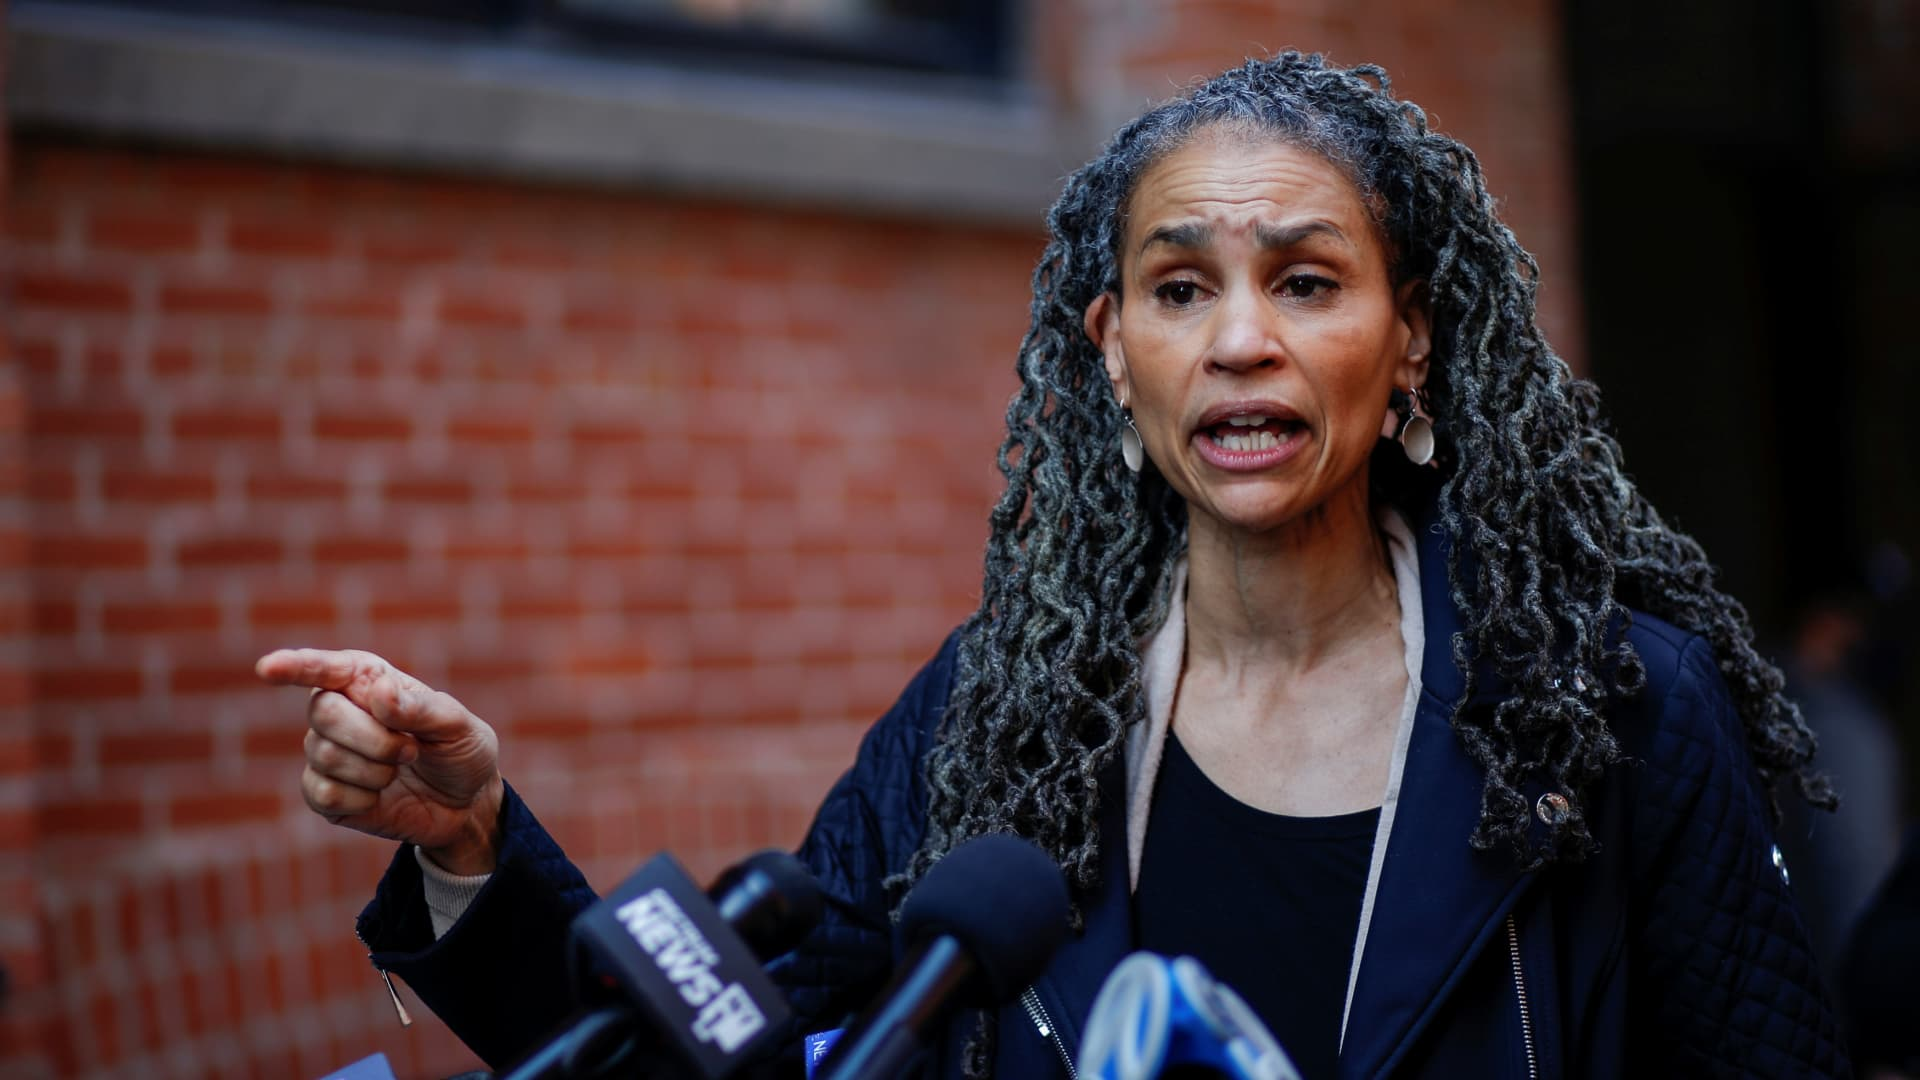 Maya Wiley, a Democratic candidate for mayor of New York City, speaks during a news conference with Andrew Yang, who also runs for the post, as they campaign in Brooklyn, New York, March 11, 2021.